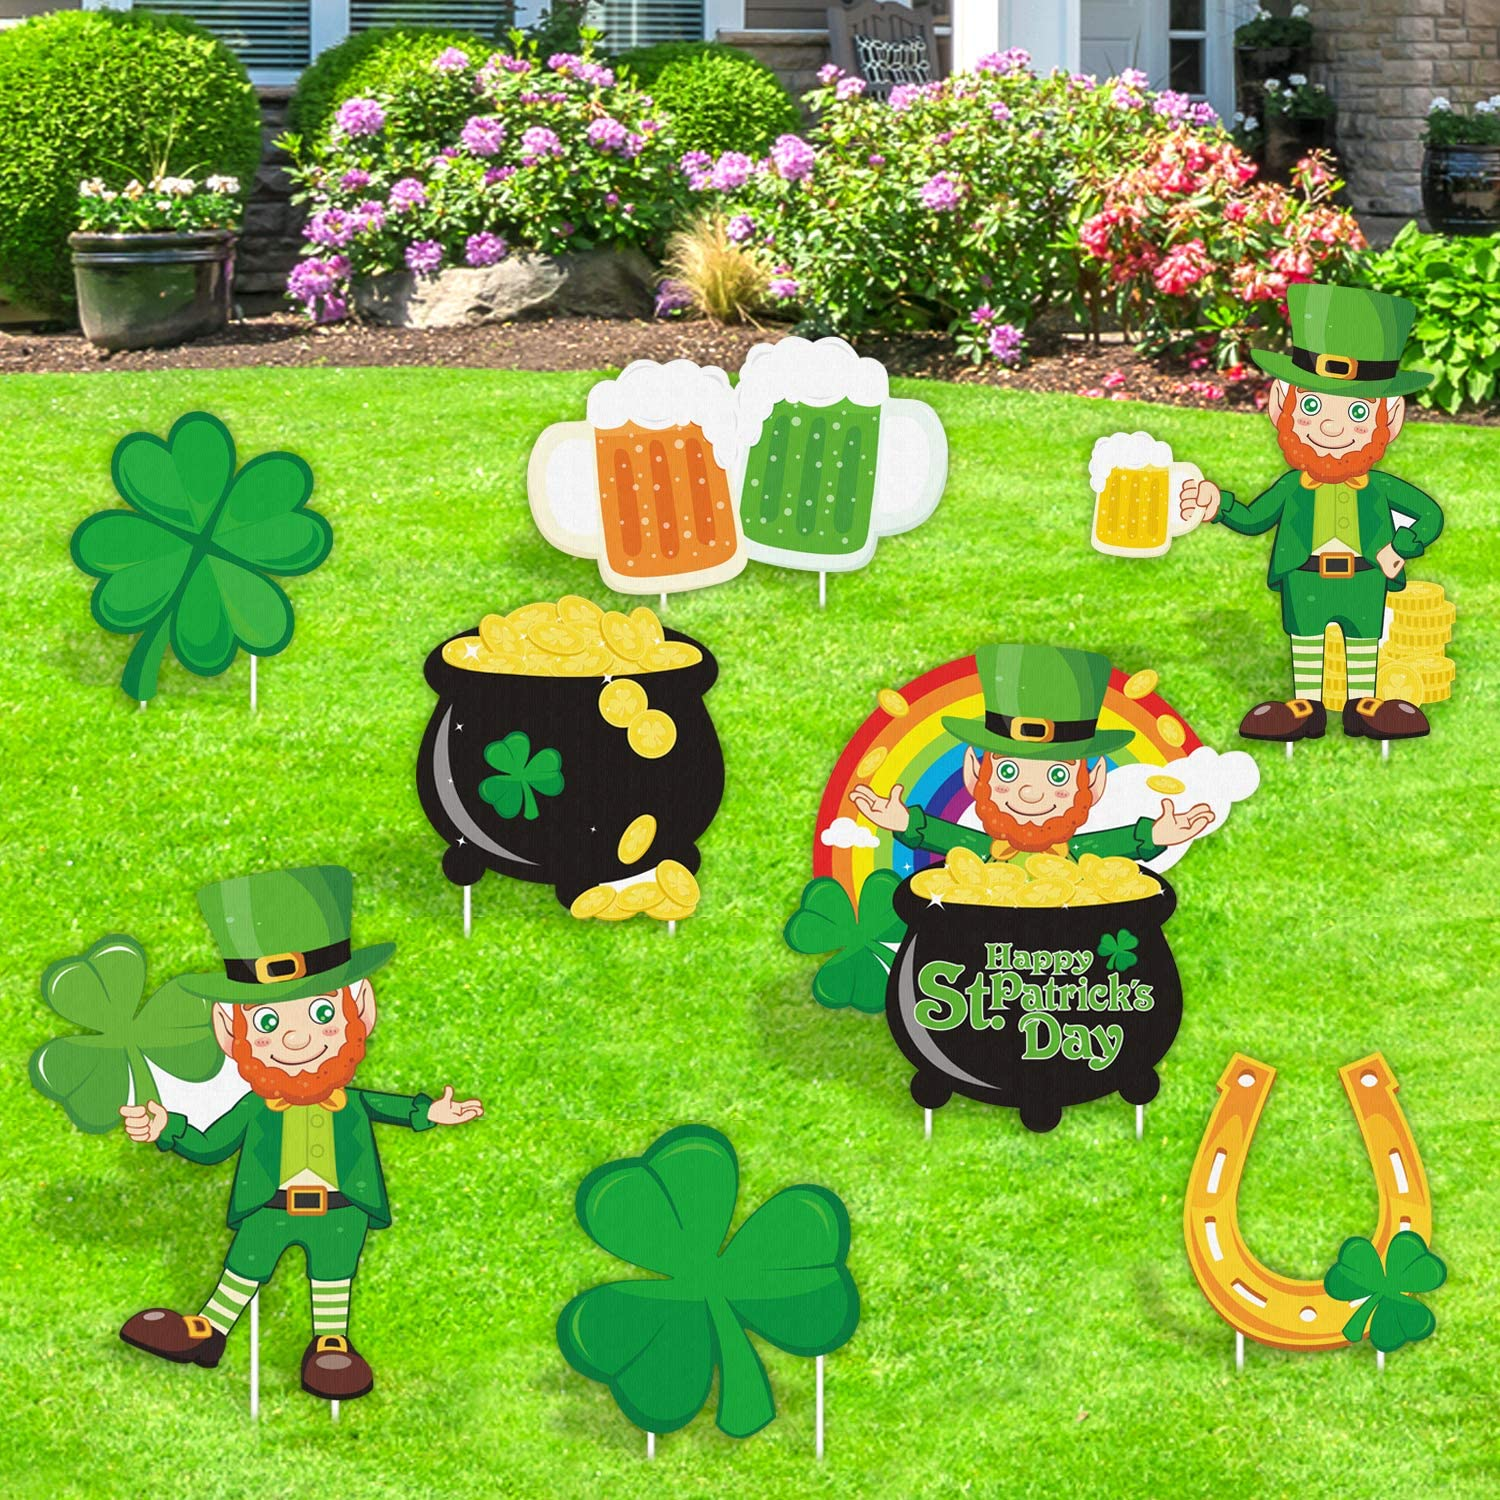 Huray Rayho Party St Patrick S Day Yard Signs Irish Saint Paddy S Day Outdoor Lawn Decorations Leprechaun Welcome Signage Shamrock Four Leaf Clover Horseshoe Pot Of Gold Garden Street Ornaments Set Home Kitchen Amazon Com